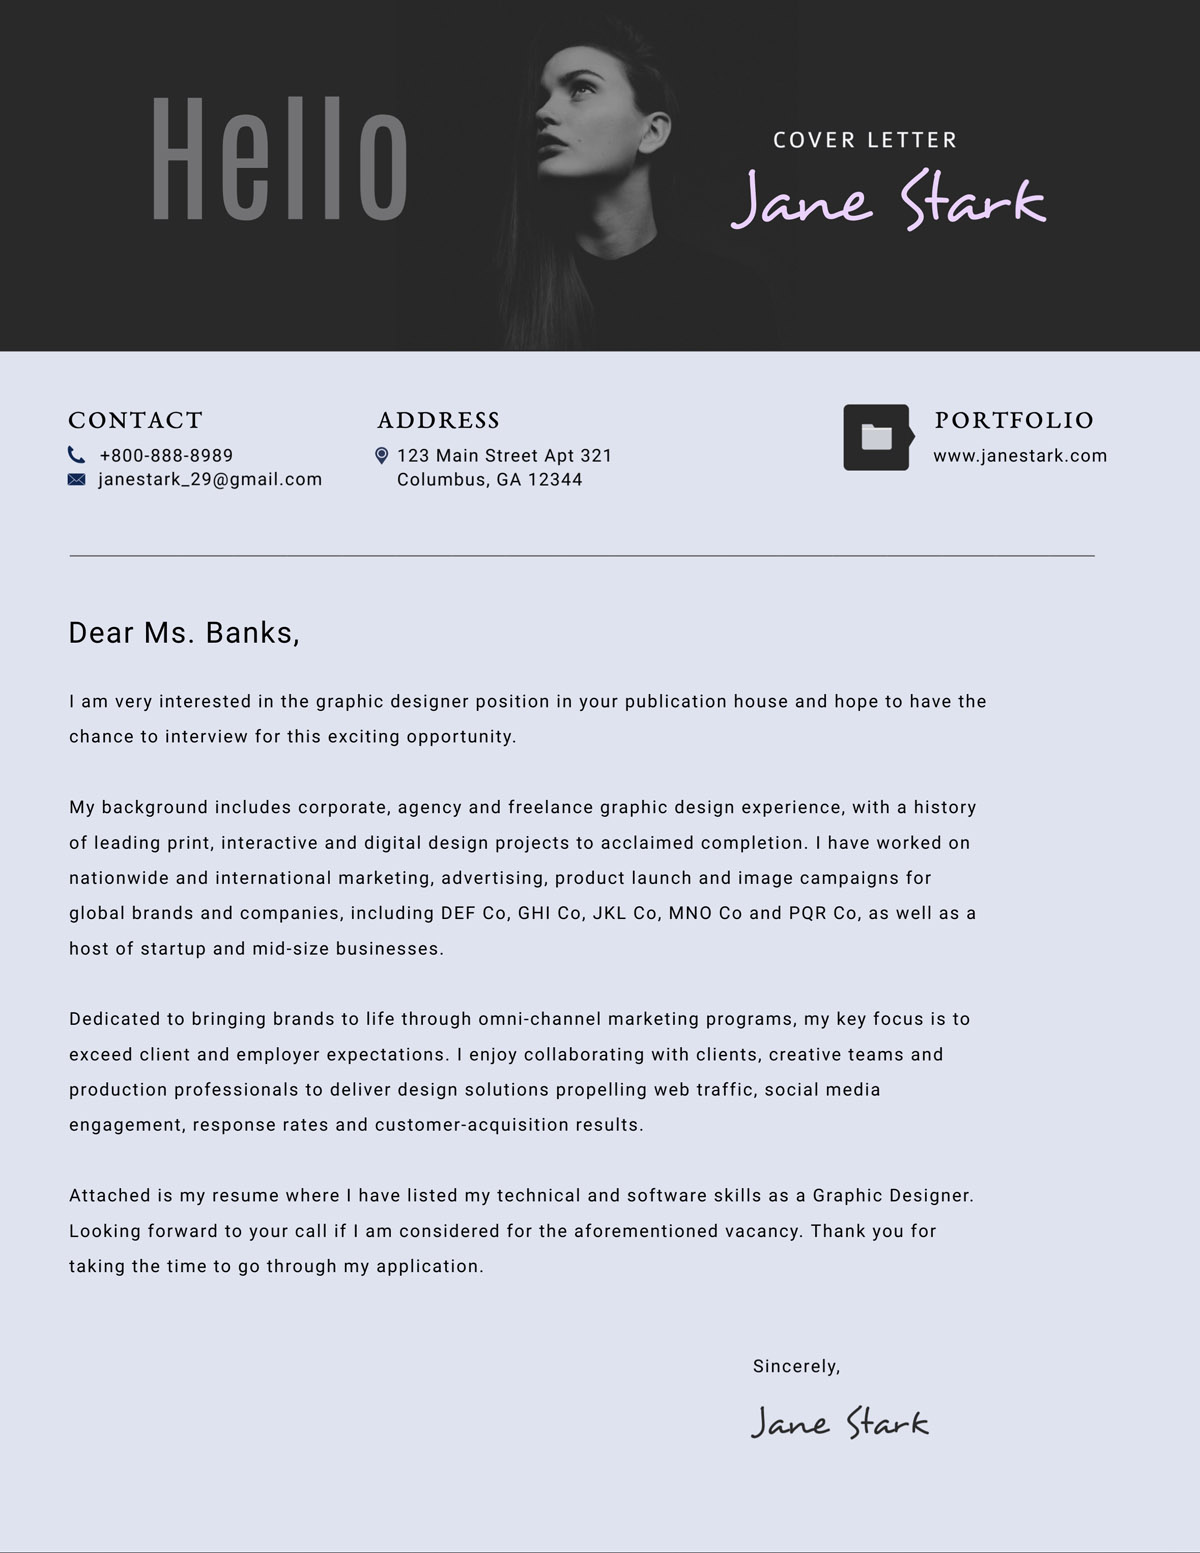 17 Effective Cover Letter Templates You Can Customize And Download